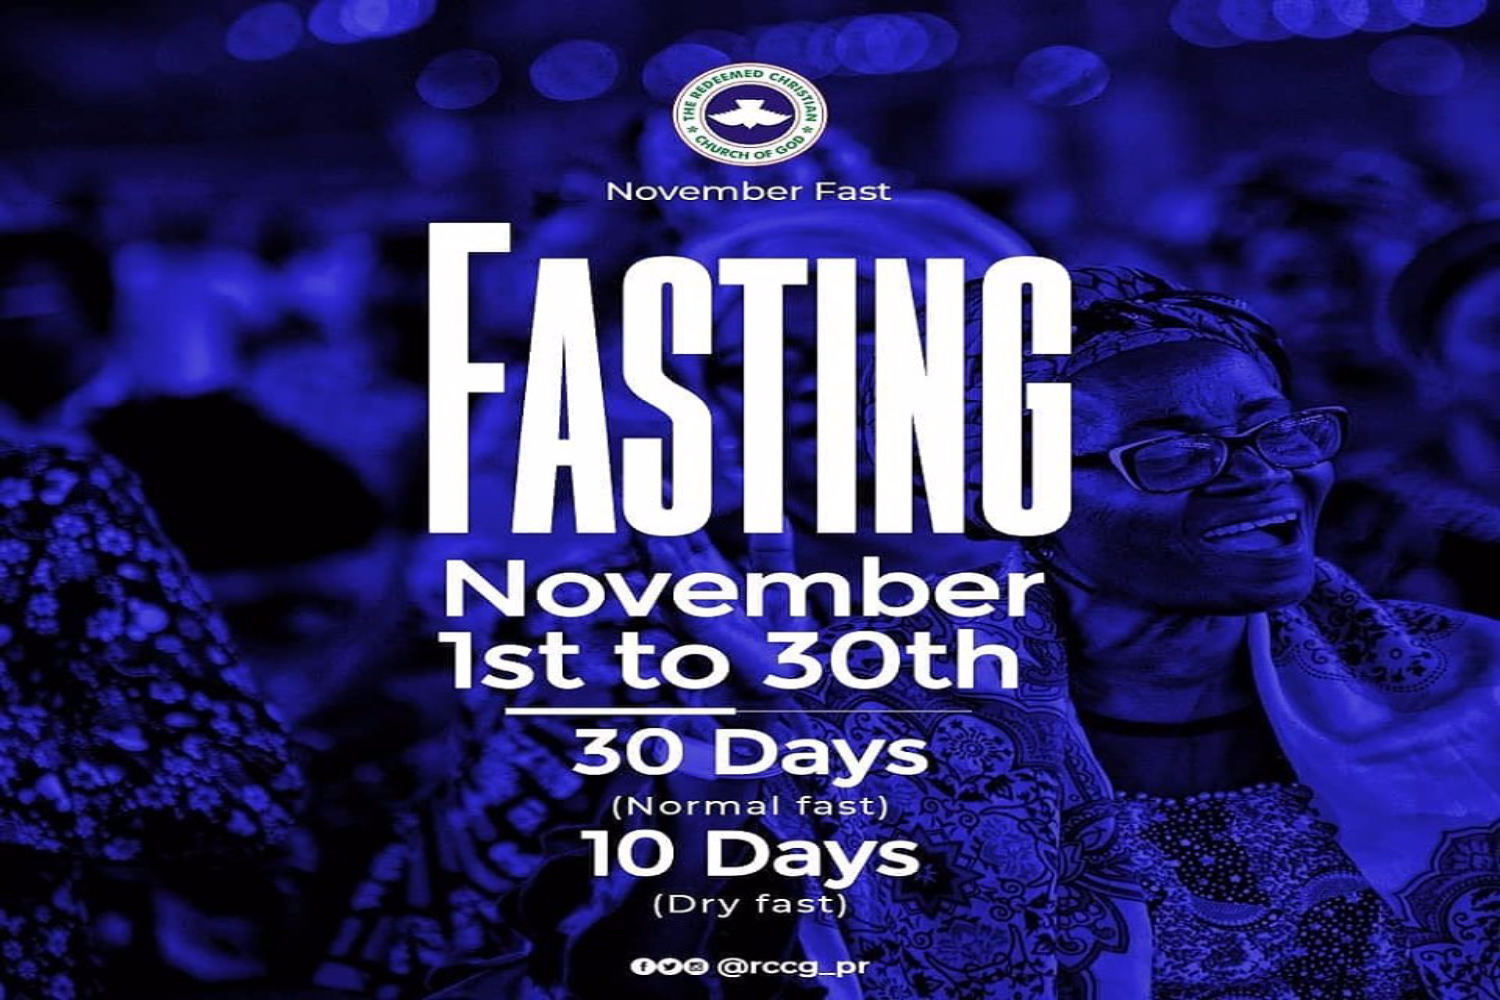 2019 RCCG Prayer Points for 49 Days Fasting Period